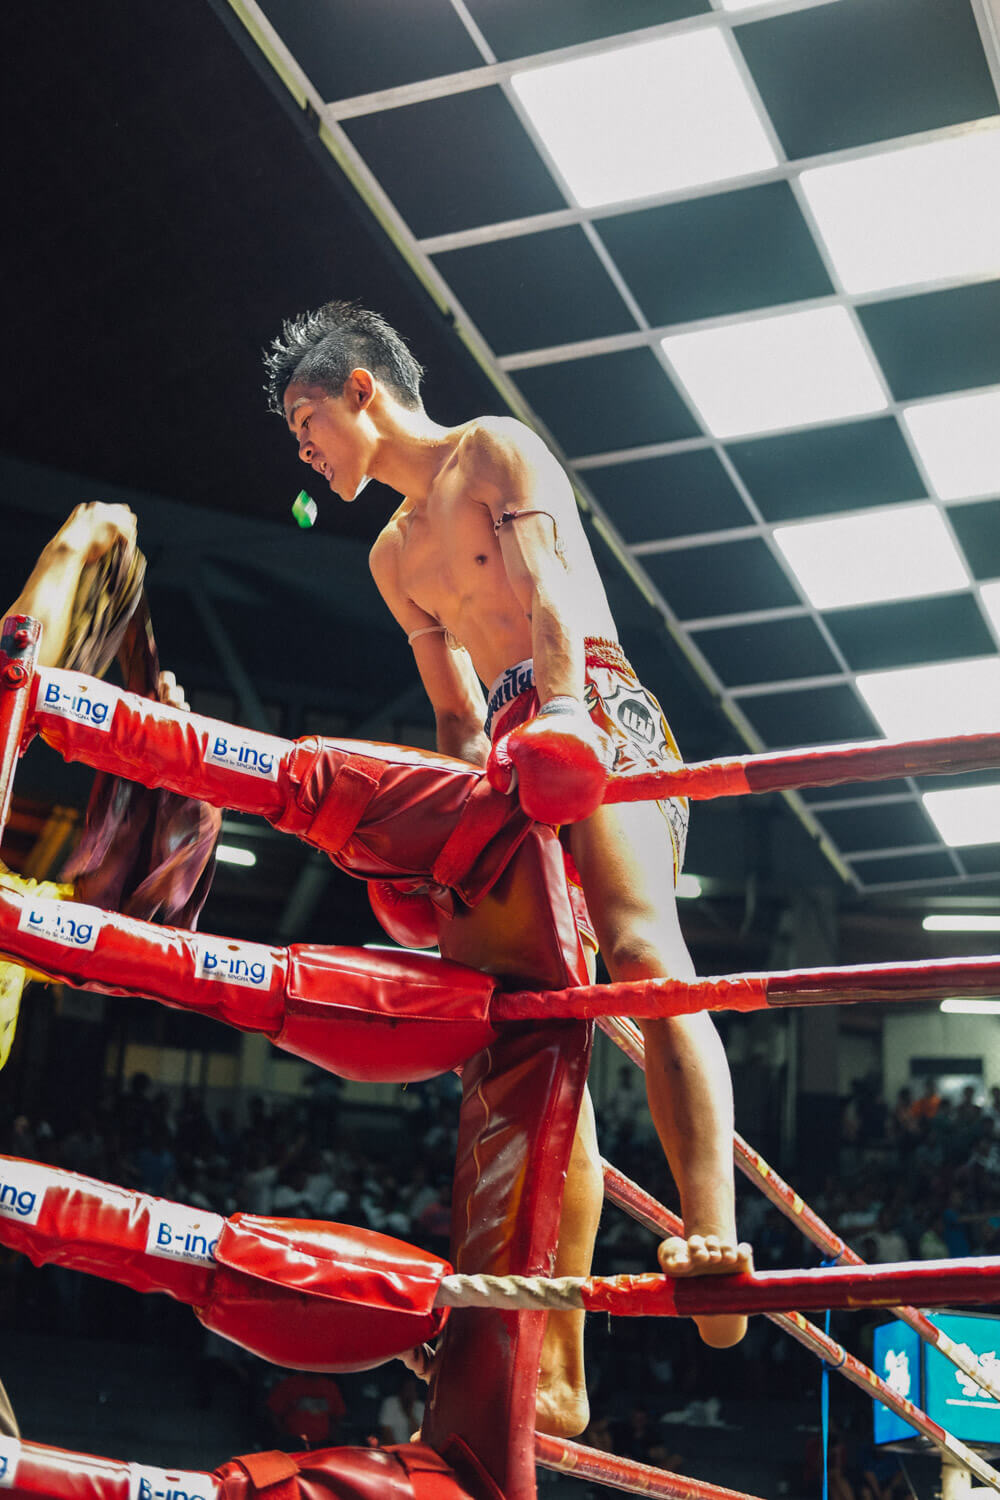 """Muay Thai fighter, Bangkok. Travel photography and guide by © Natasha Lequepeys for """"And Then I Met Yoko"""". #thailand #travelguide #travelphotography #travelitinerary #fujifilm #muaythai"""